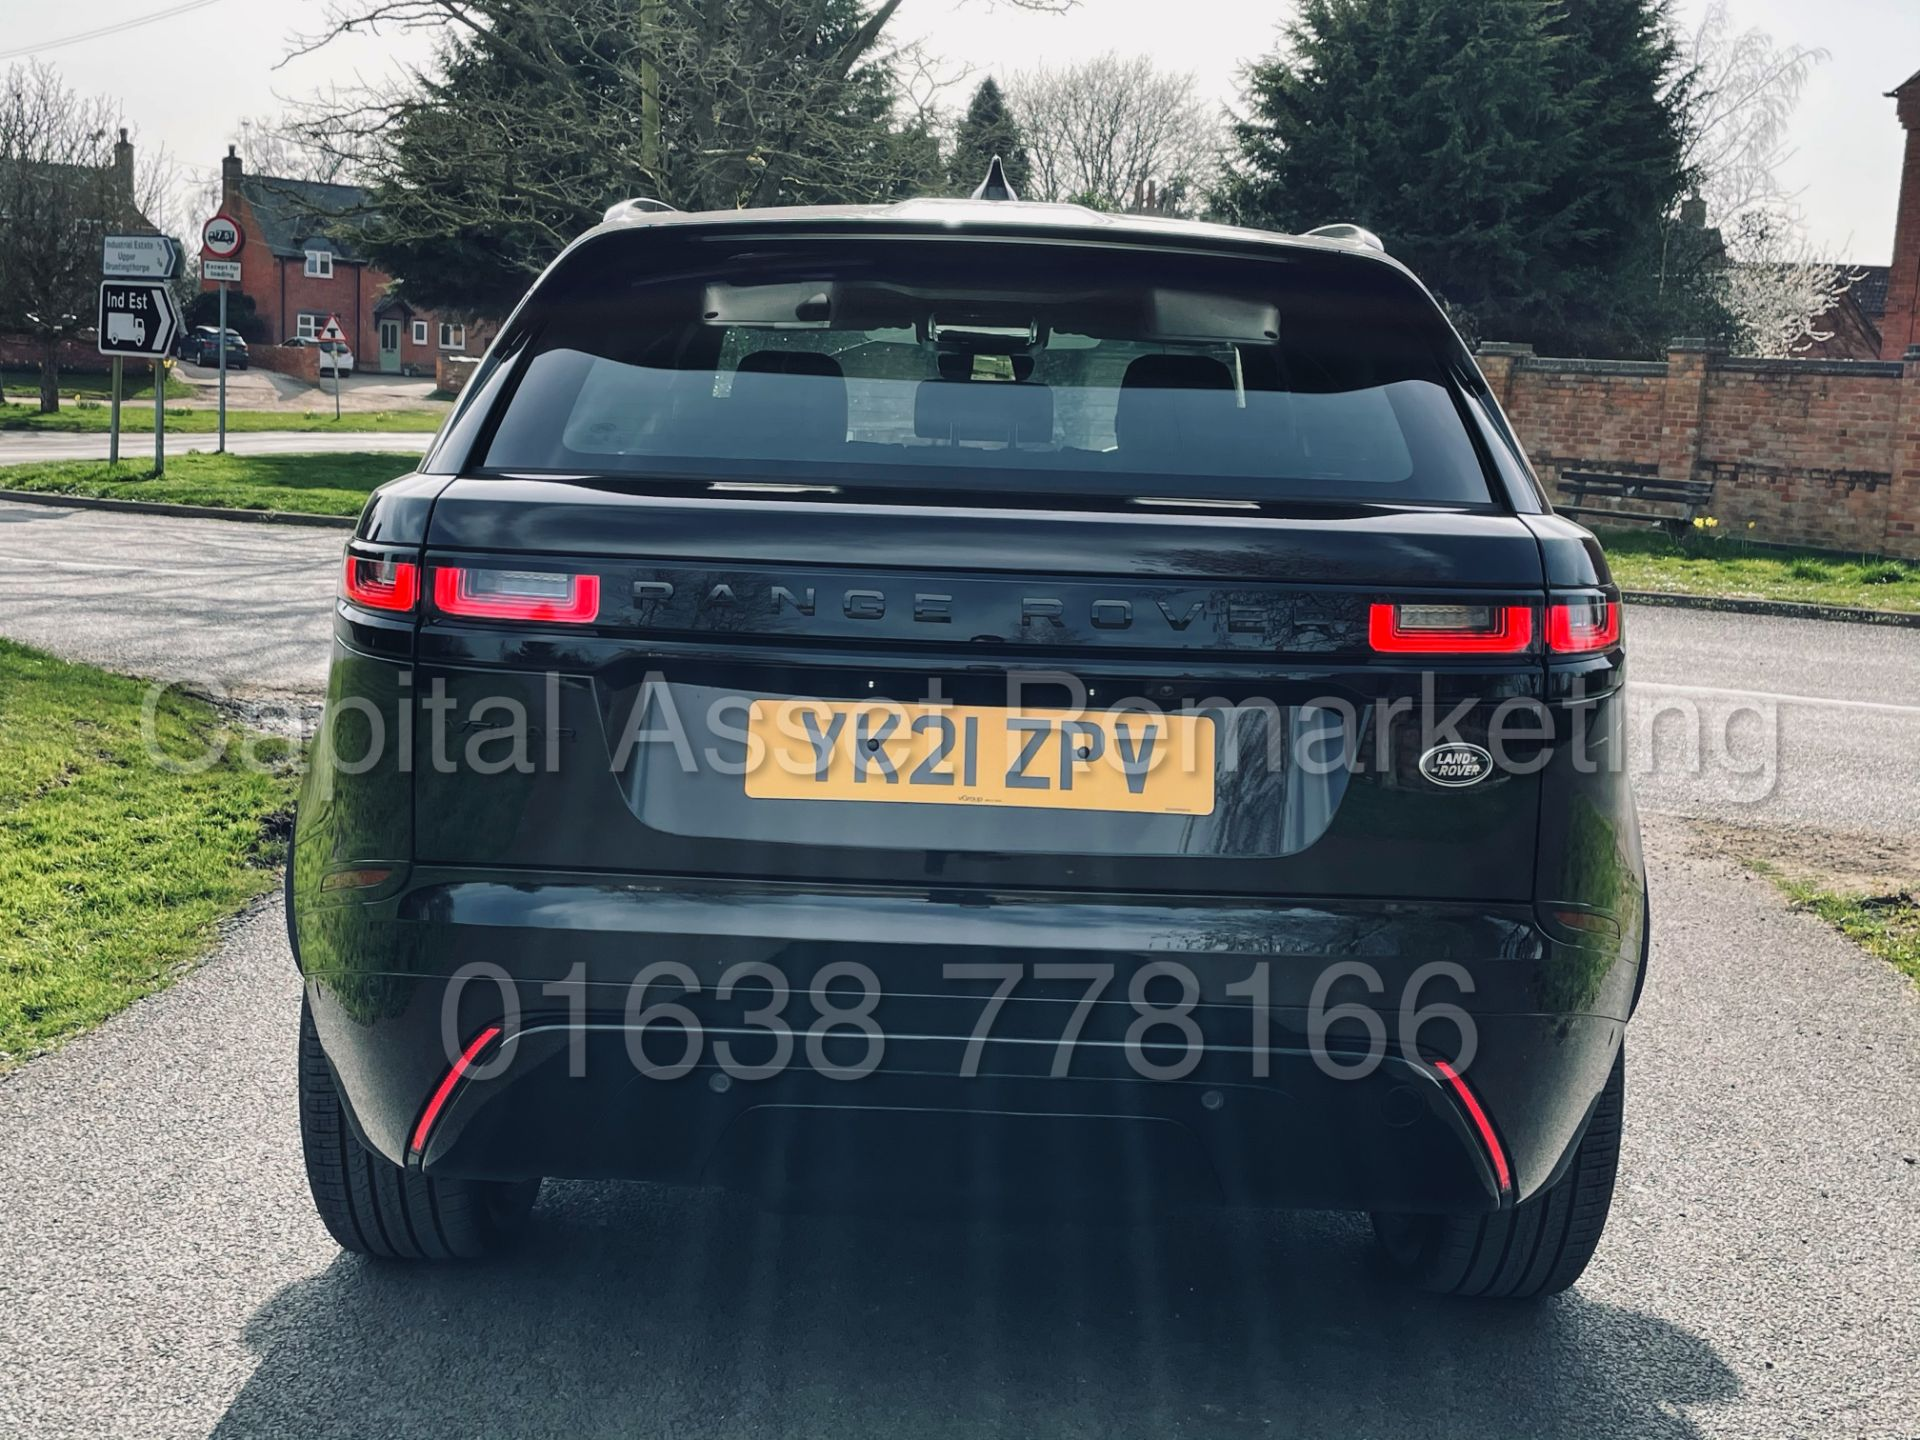 (On Sale) RANGE ROVER VELAR *R-DYNAMIC* SUV (2021) *8 SPEED AUTO - LEATHER* (DELIVERY MILES) - Image 11 of 50